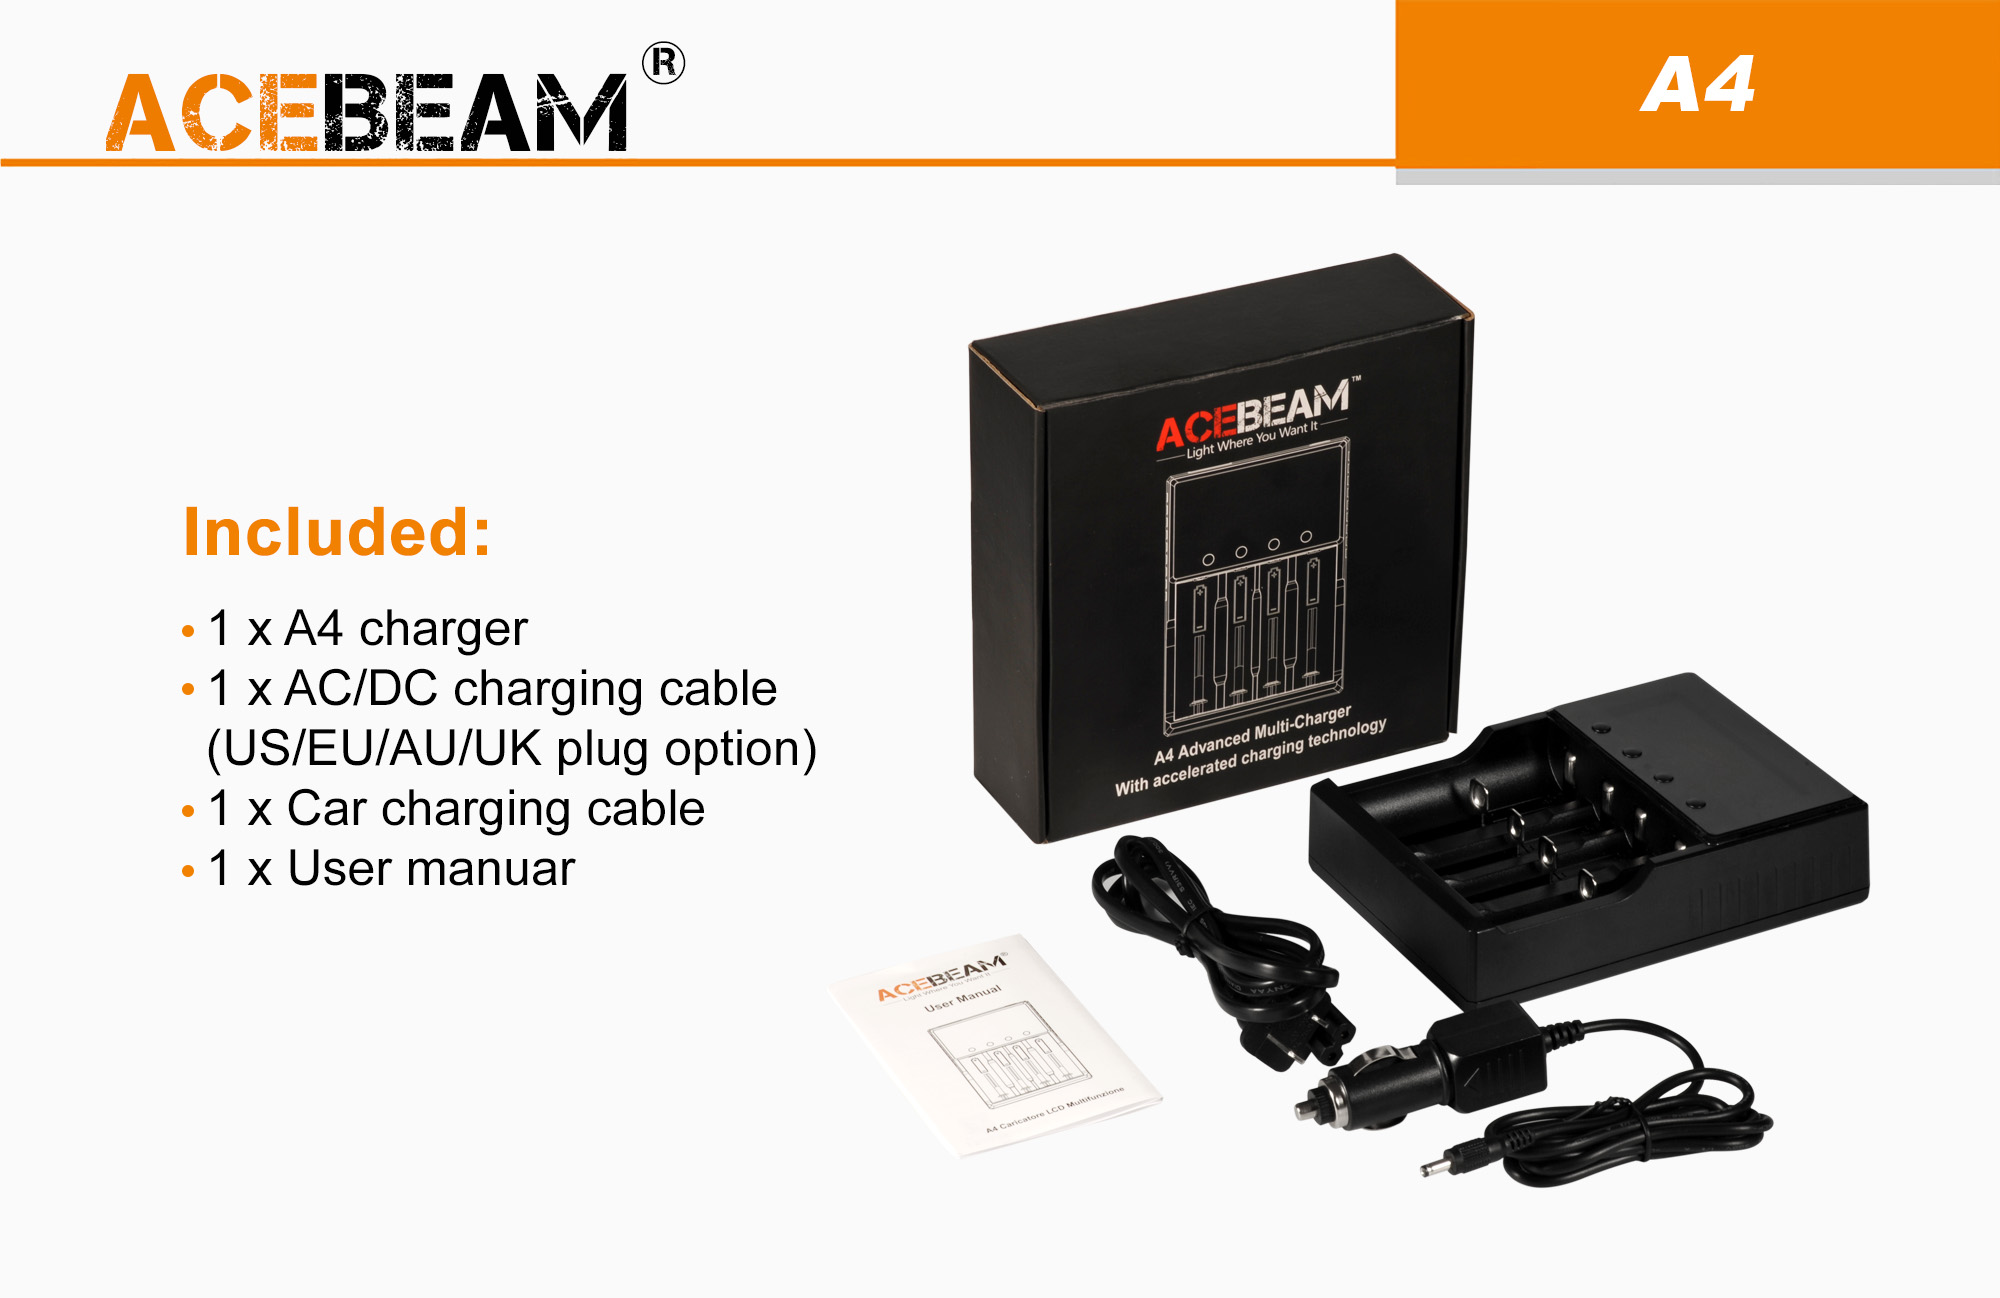 acebeam 21700 charger